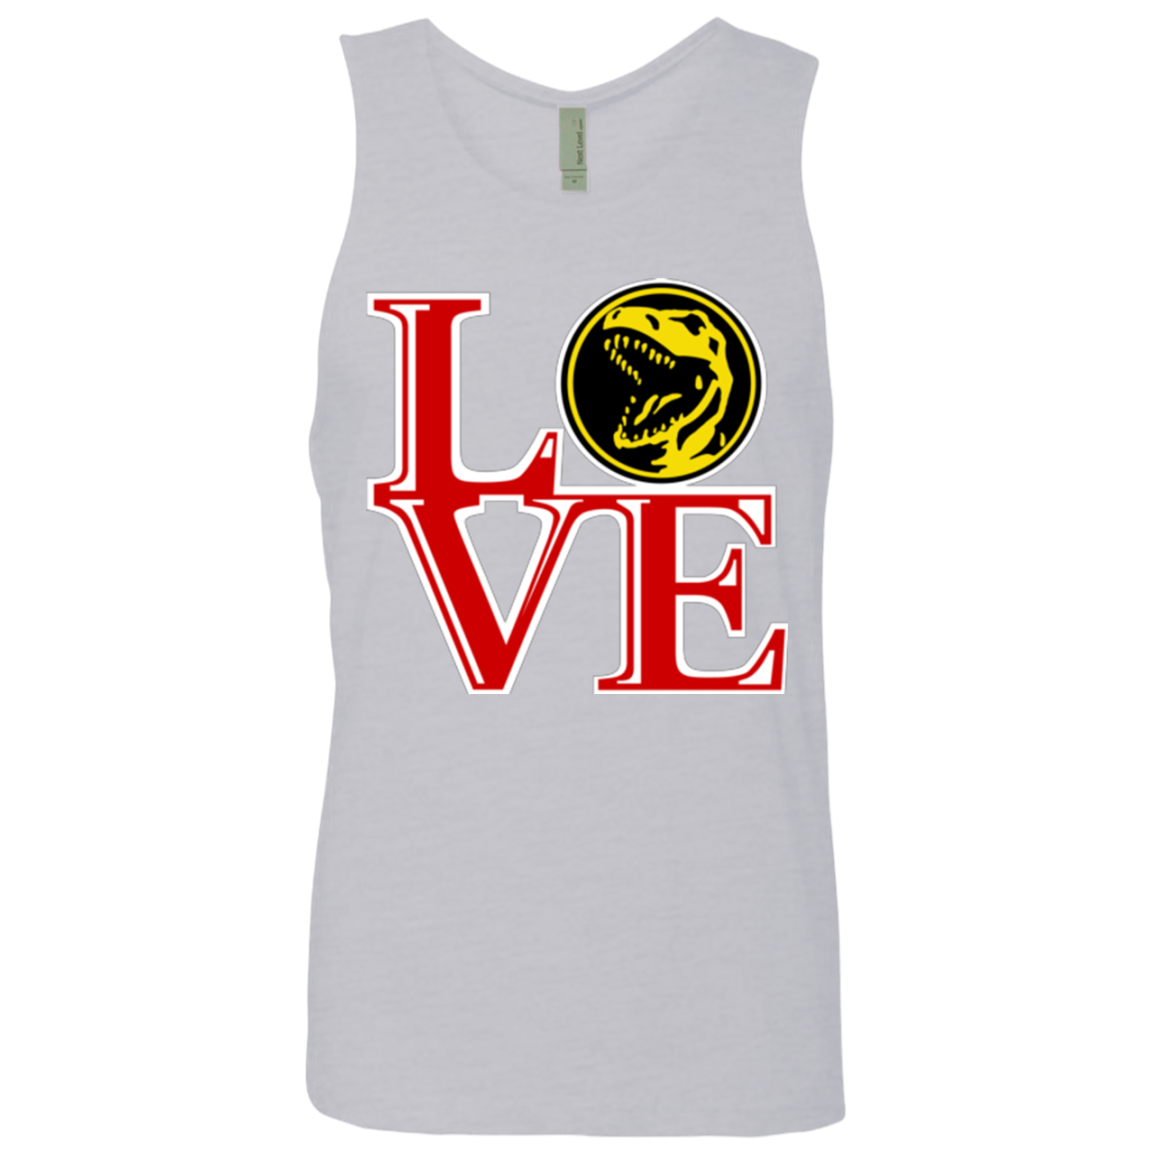 Red Ranger LOVE Men's Premium Tank Top